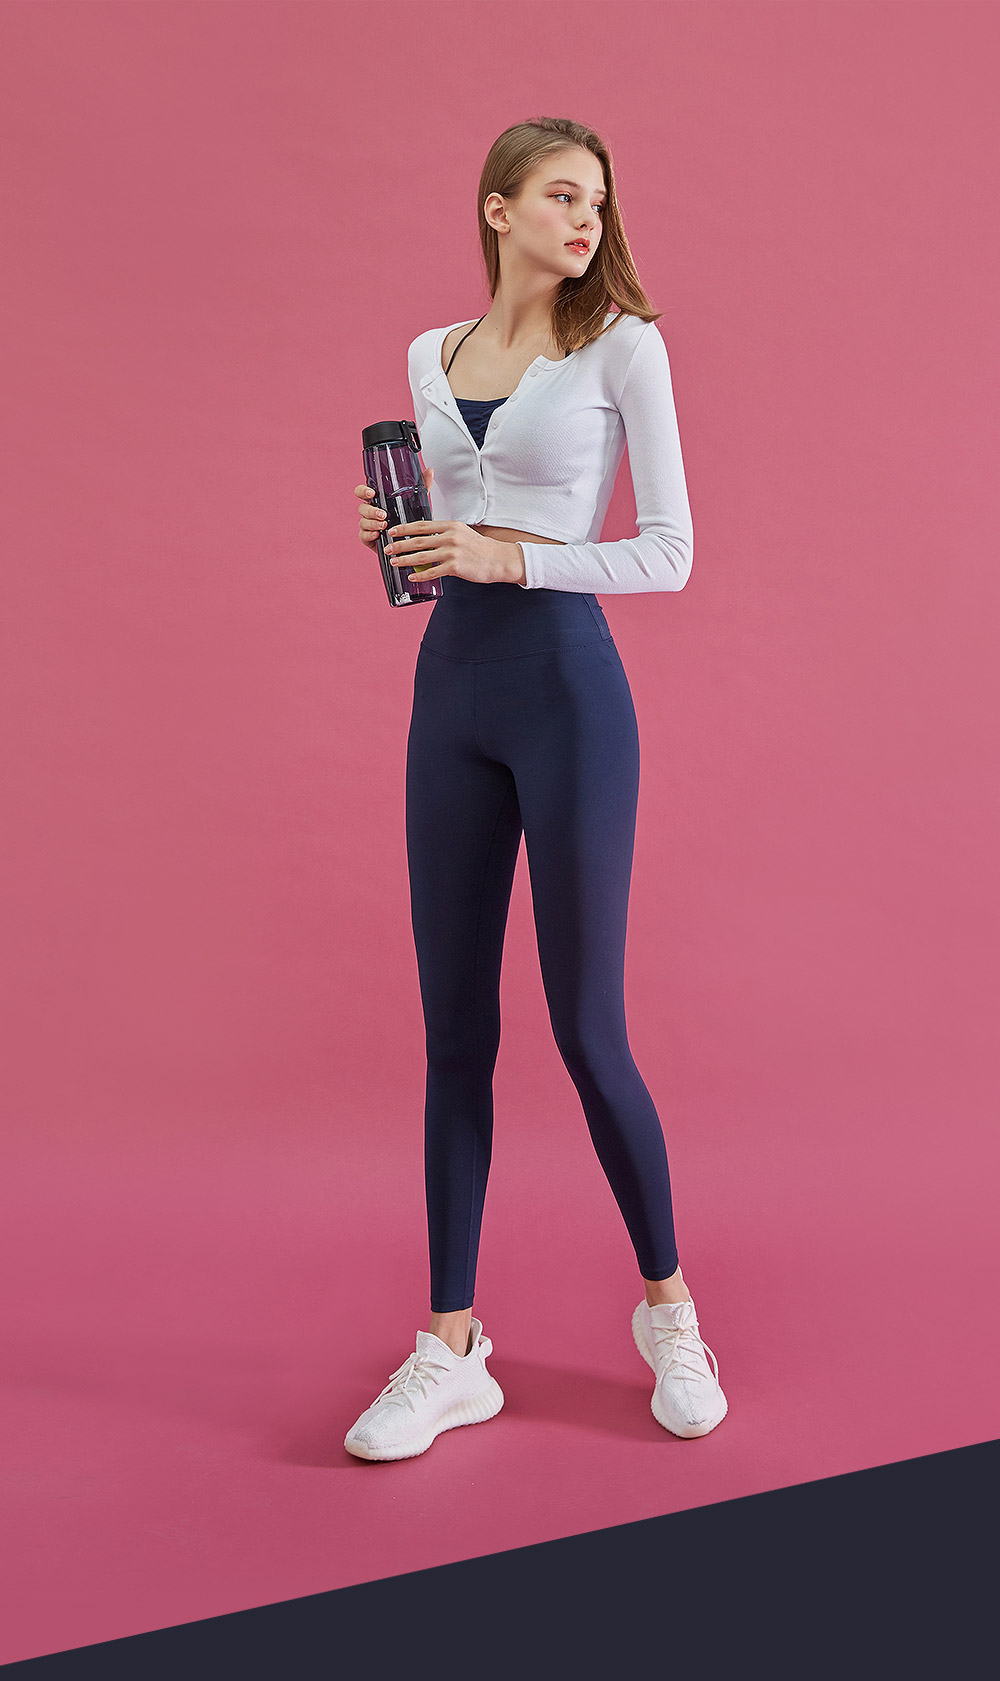 //cdn.nhanh.vn/cdn/store/29770/psCT/20190108/11027736/_5Kg_Perfect_Line_Leggings_Plus_(2019_22_9).jpg